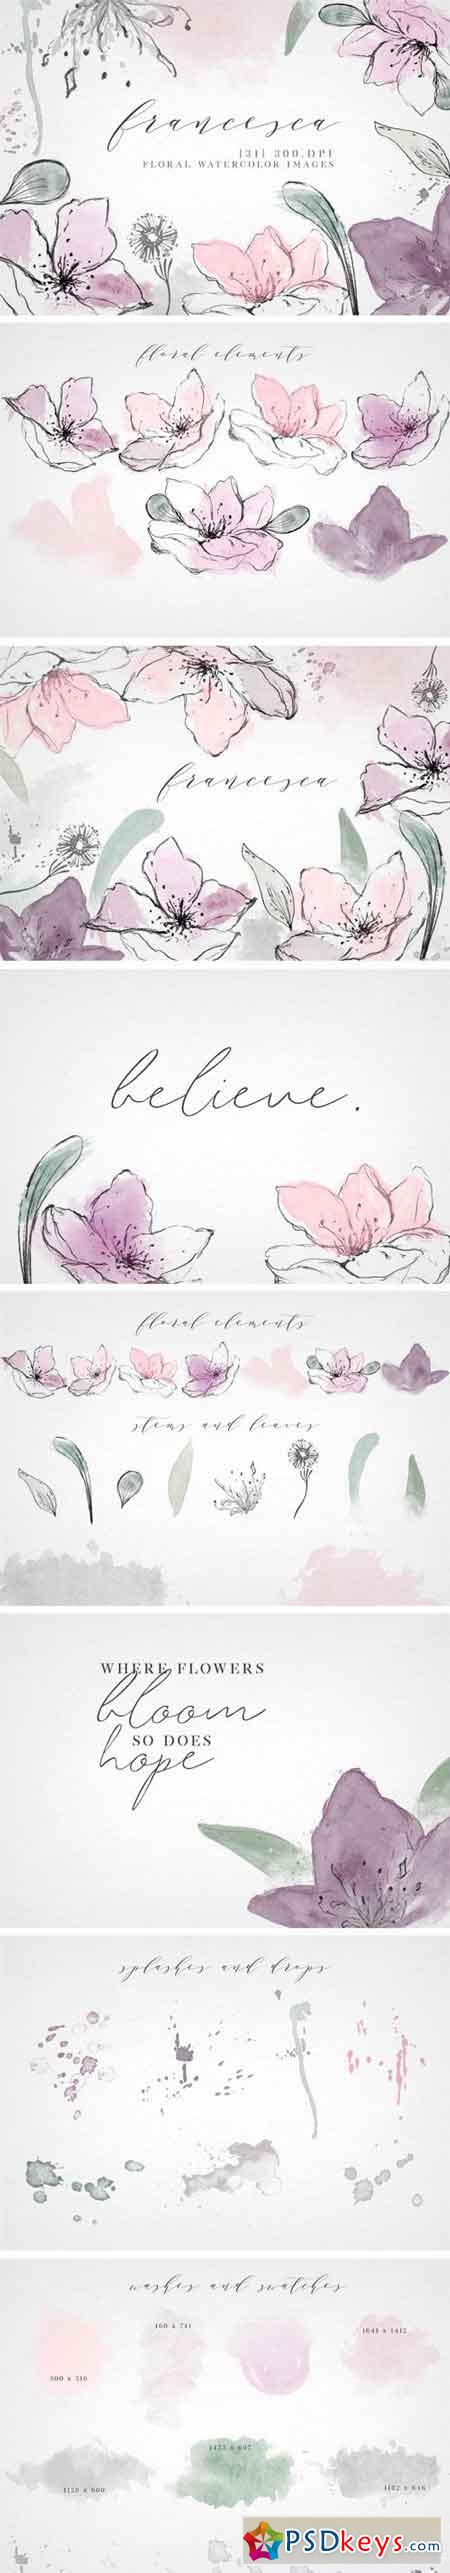 Watercolor Floral Clip Art Elements 2338264